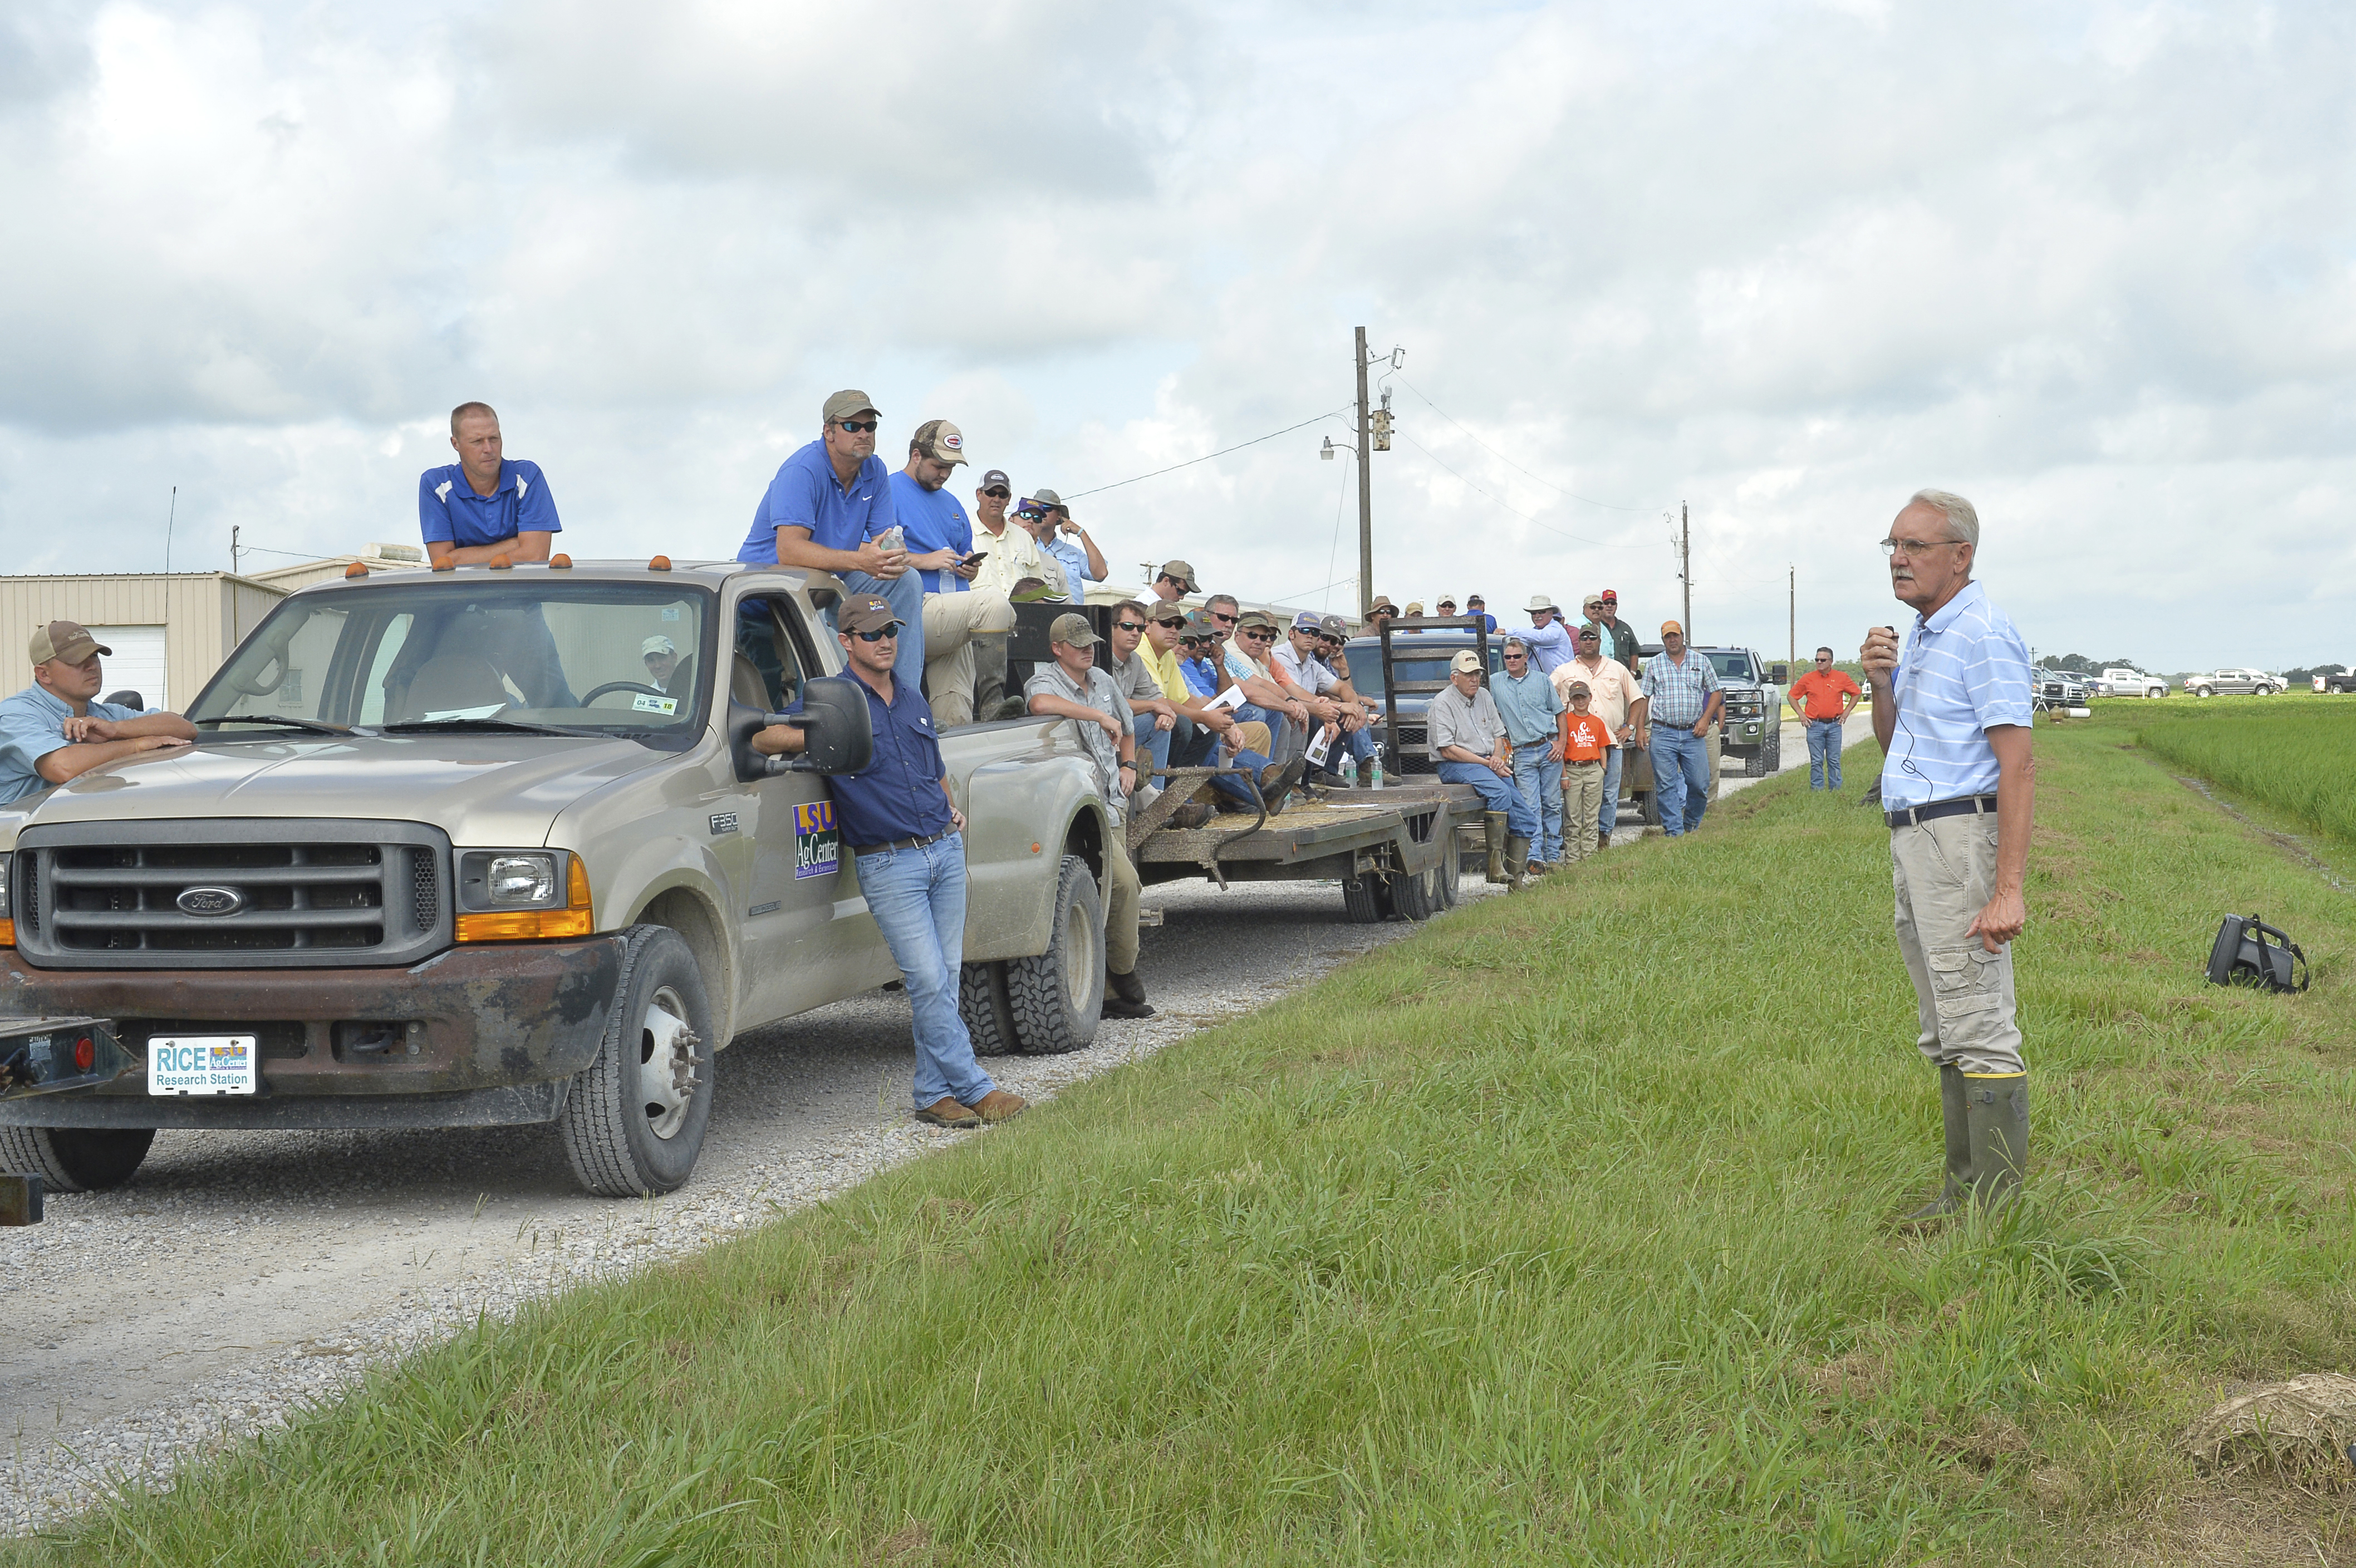 Linscombe june 14 field day.JPG thumbnail